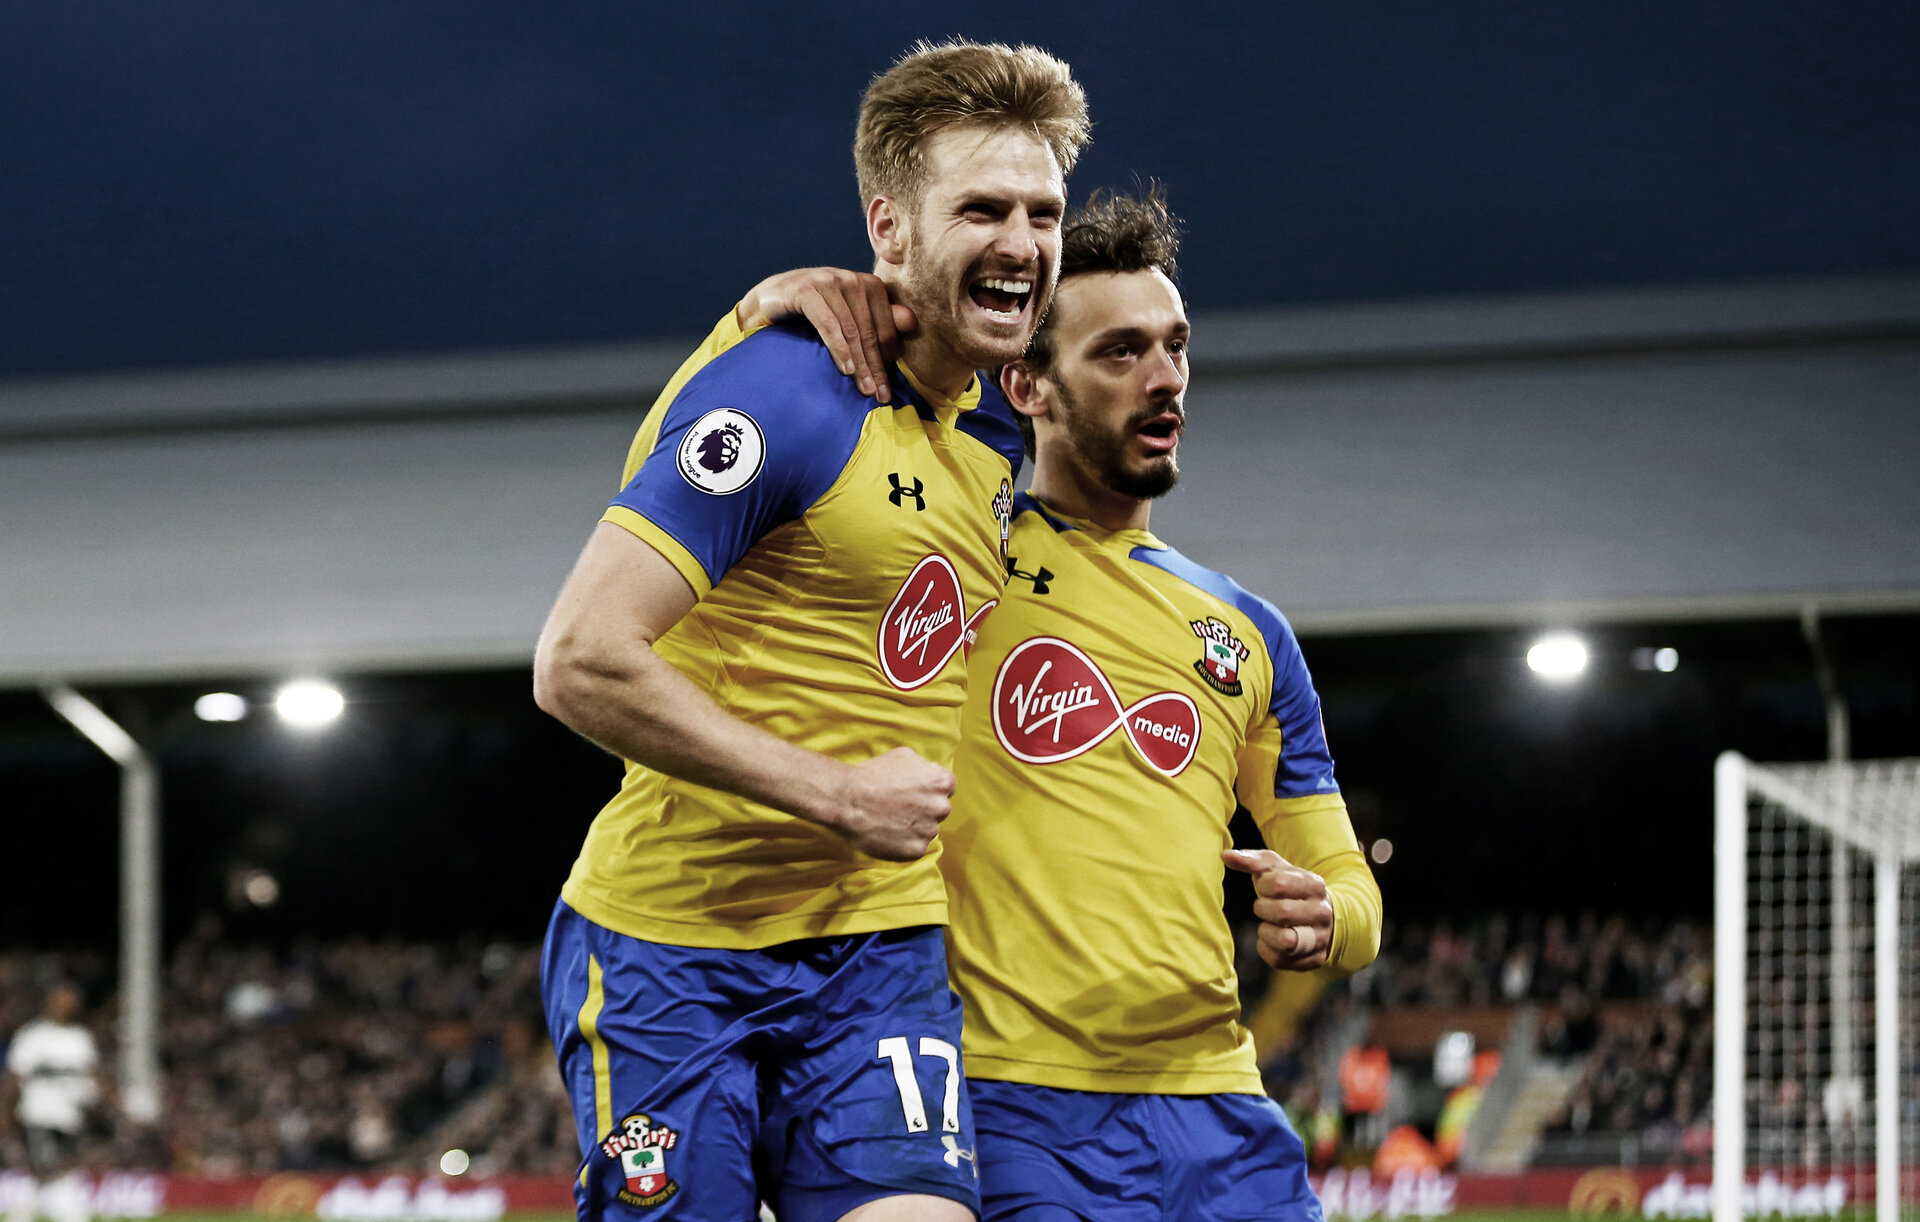 LONDON, ENGLAND - NOVEMBER 24: Stuart Armstrong of Southampton celebrates during the Premier League match between Fulham FC and Southampton FC at Craven Cottage on November 24, 2018 in London, United Kingdom. (Photo by Matt Watson/Southampton FC via Getty Images)